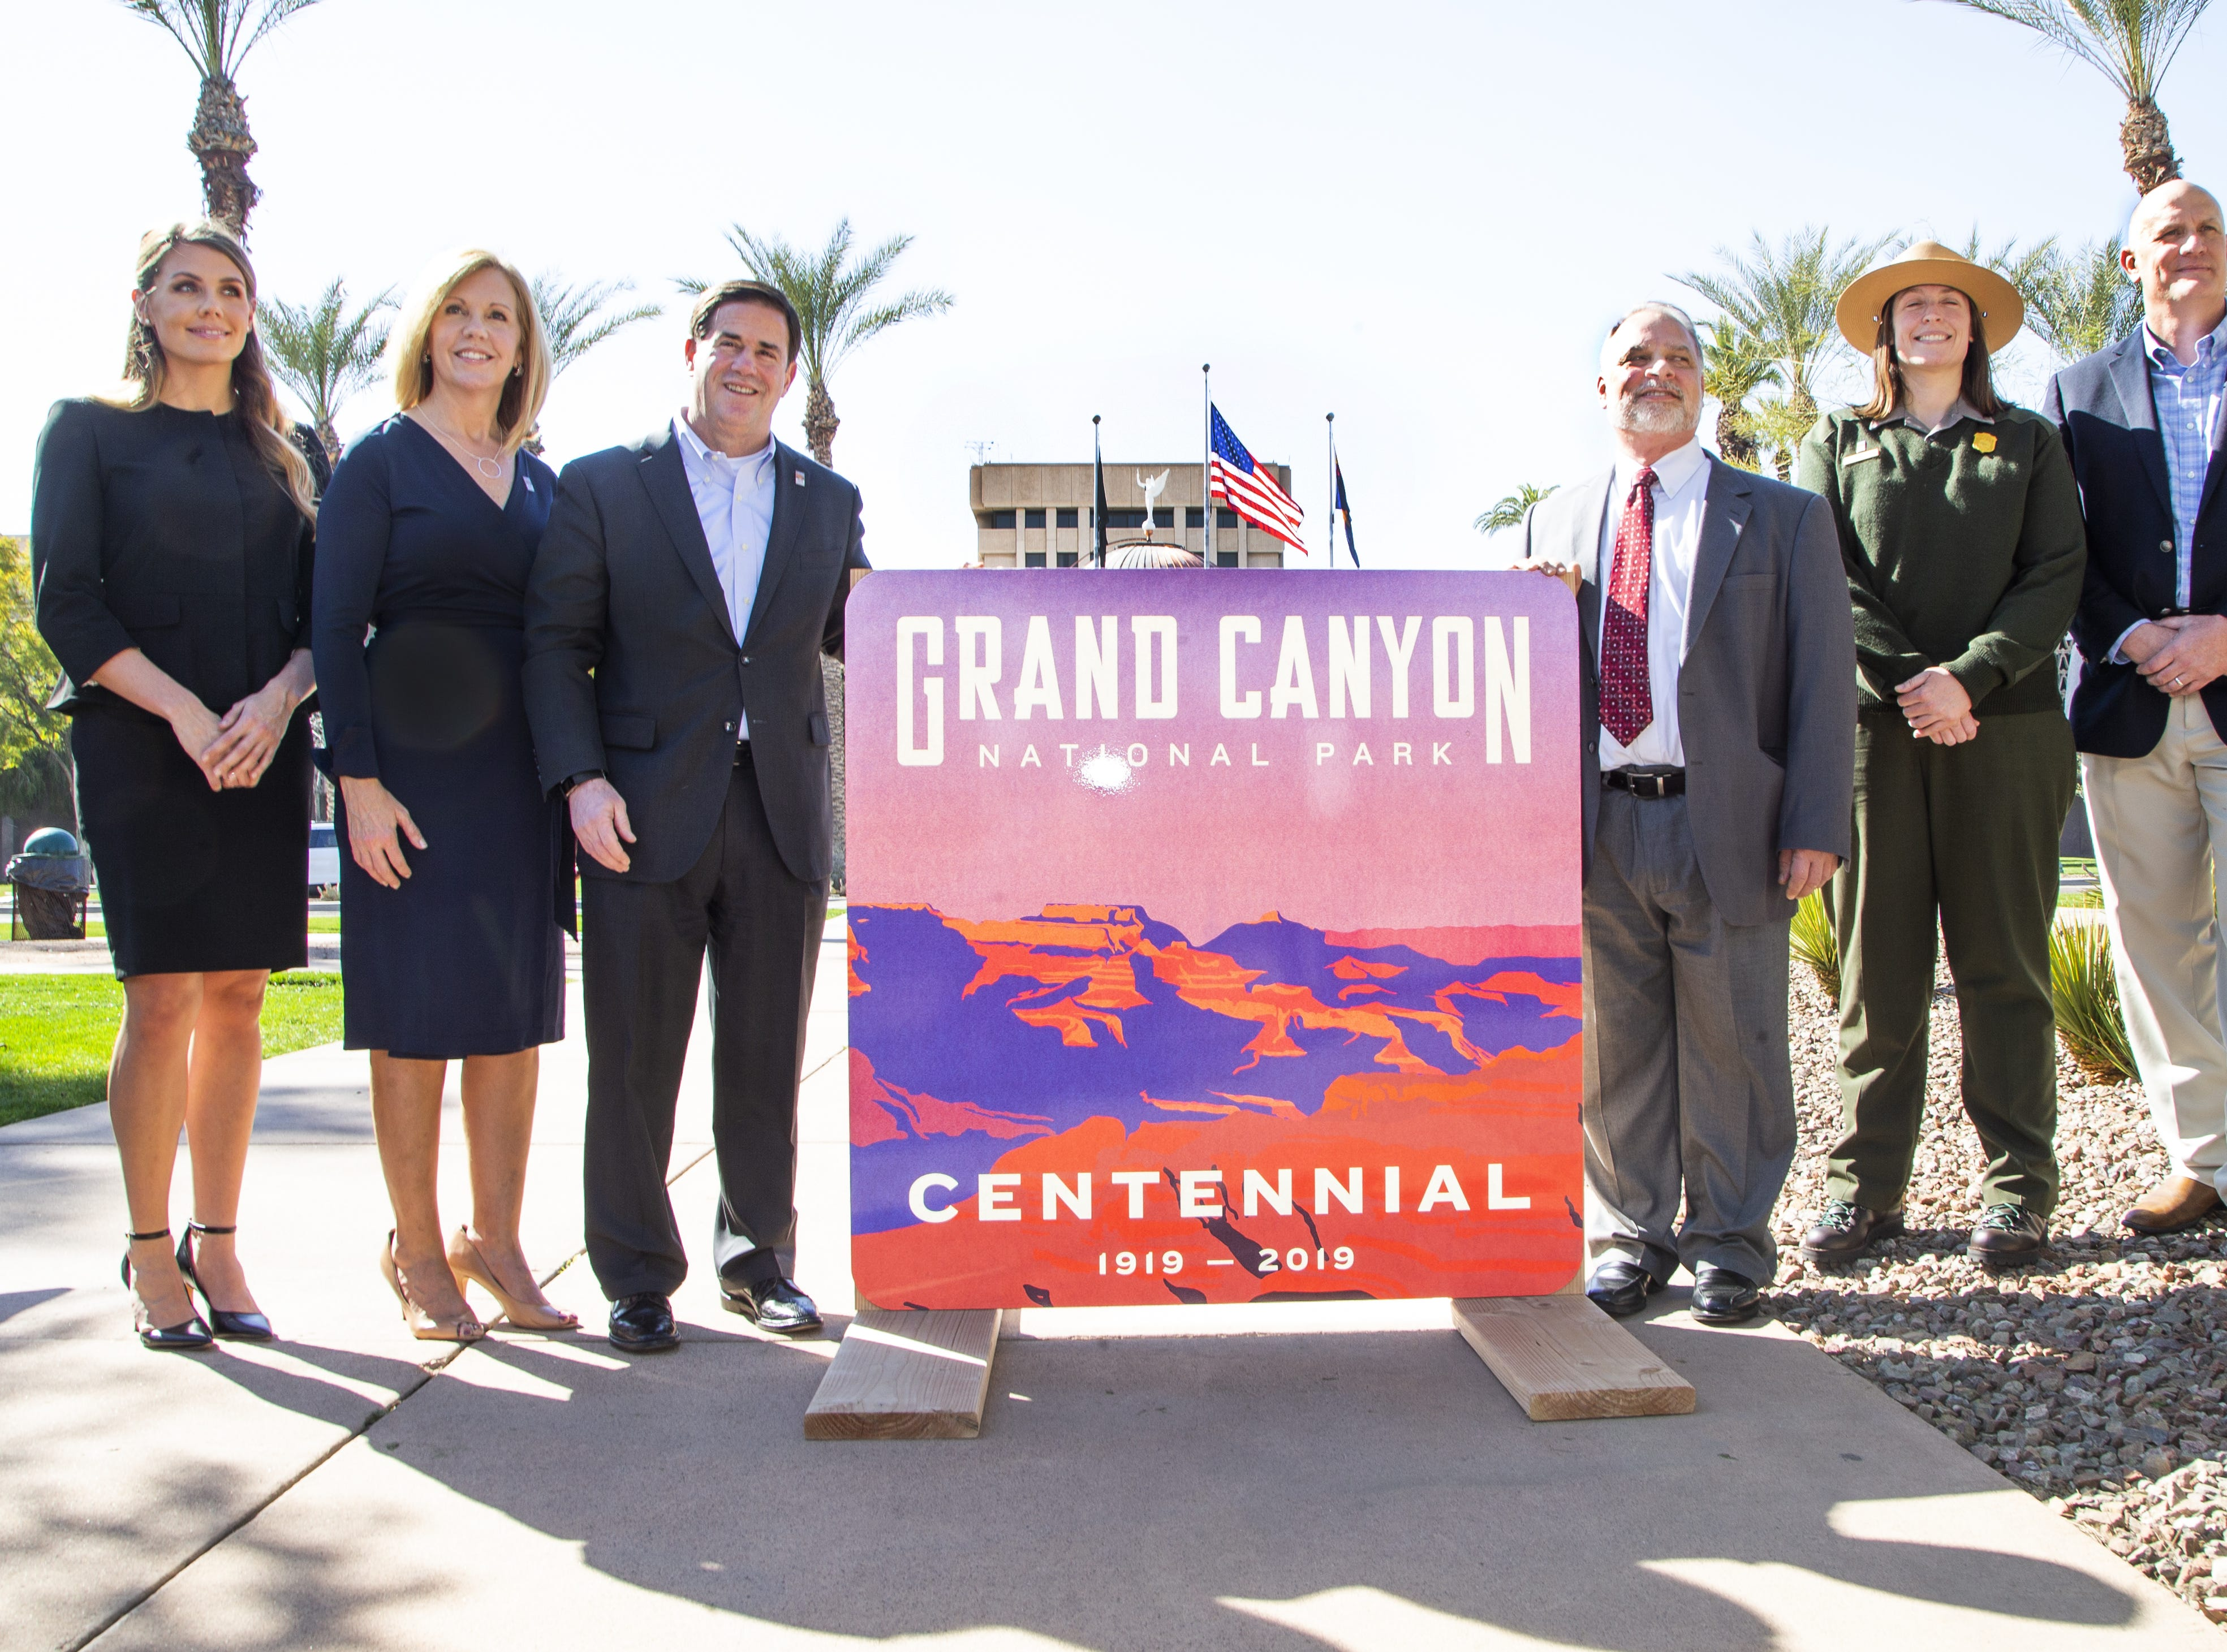 Gov. Doug Ducey helped to unveil a new sign marking the 100-year birthday of the Grand Canyon during a ceremony in Wesley Bolin Memorial Plaza at the Capitol in Phoenix, February 27, 2019. From left to right are, Katie Prendergast, Arizona Public Service; Debbie Johnson, director of the Arizona Office of Tourism; Gov. Ducey; John Halikowski, Arizona Department of Transportation director; Grand Canyon National Park Ranger Sara Bateman; Robert Broscheid, executive director of Arizona State Parks and Trails.